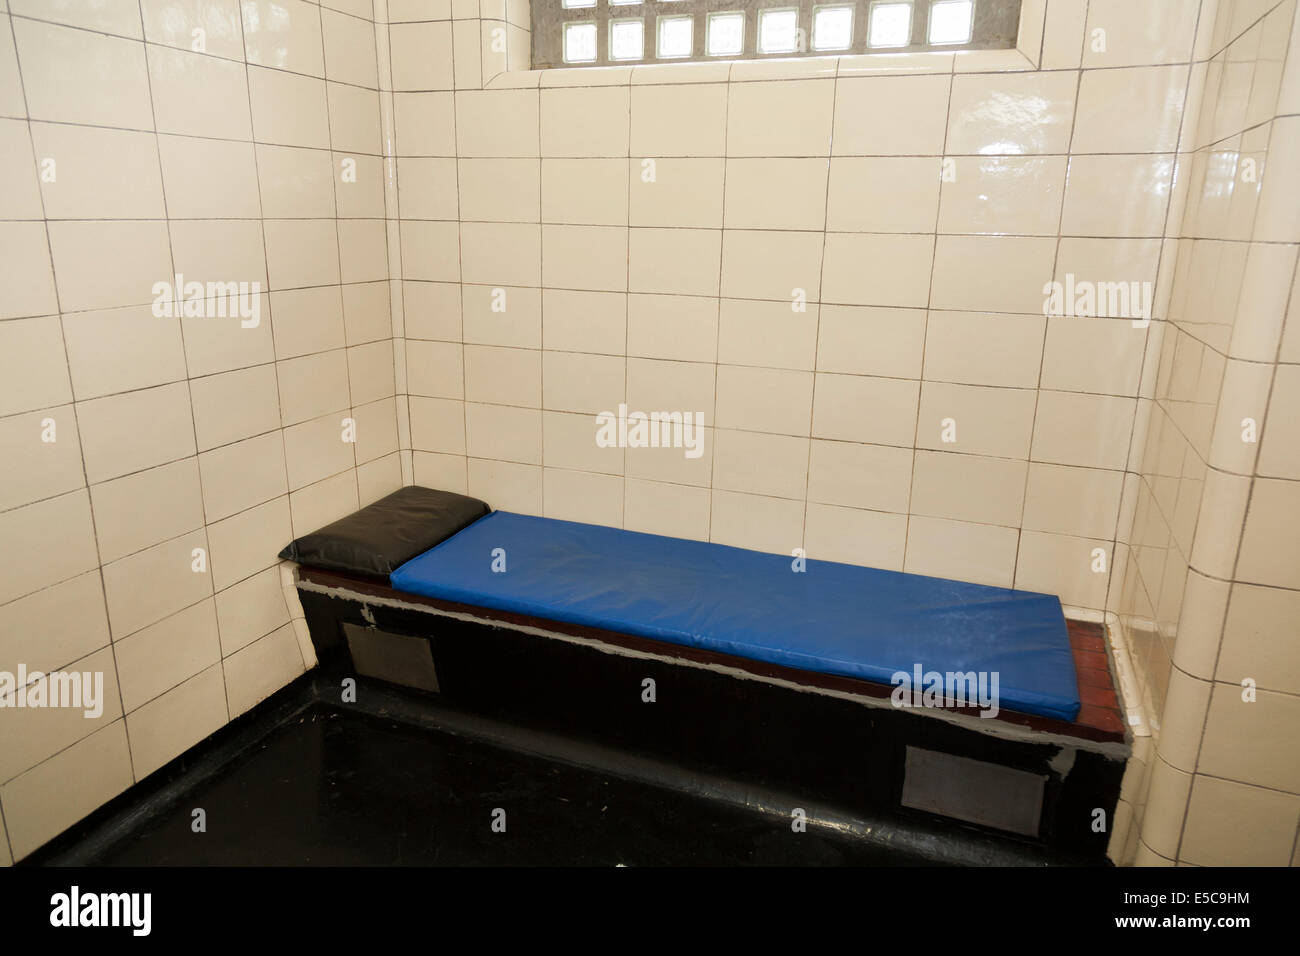 Metropolitan Police service ( old / traditional ) Police station custody suite / suites / cell / cells in Twickenham. - Stock Image